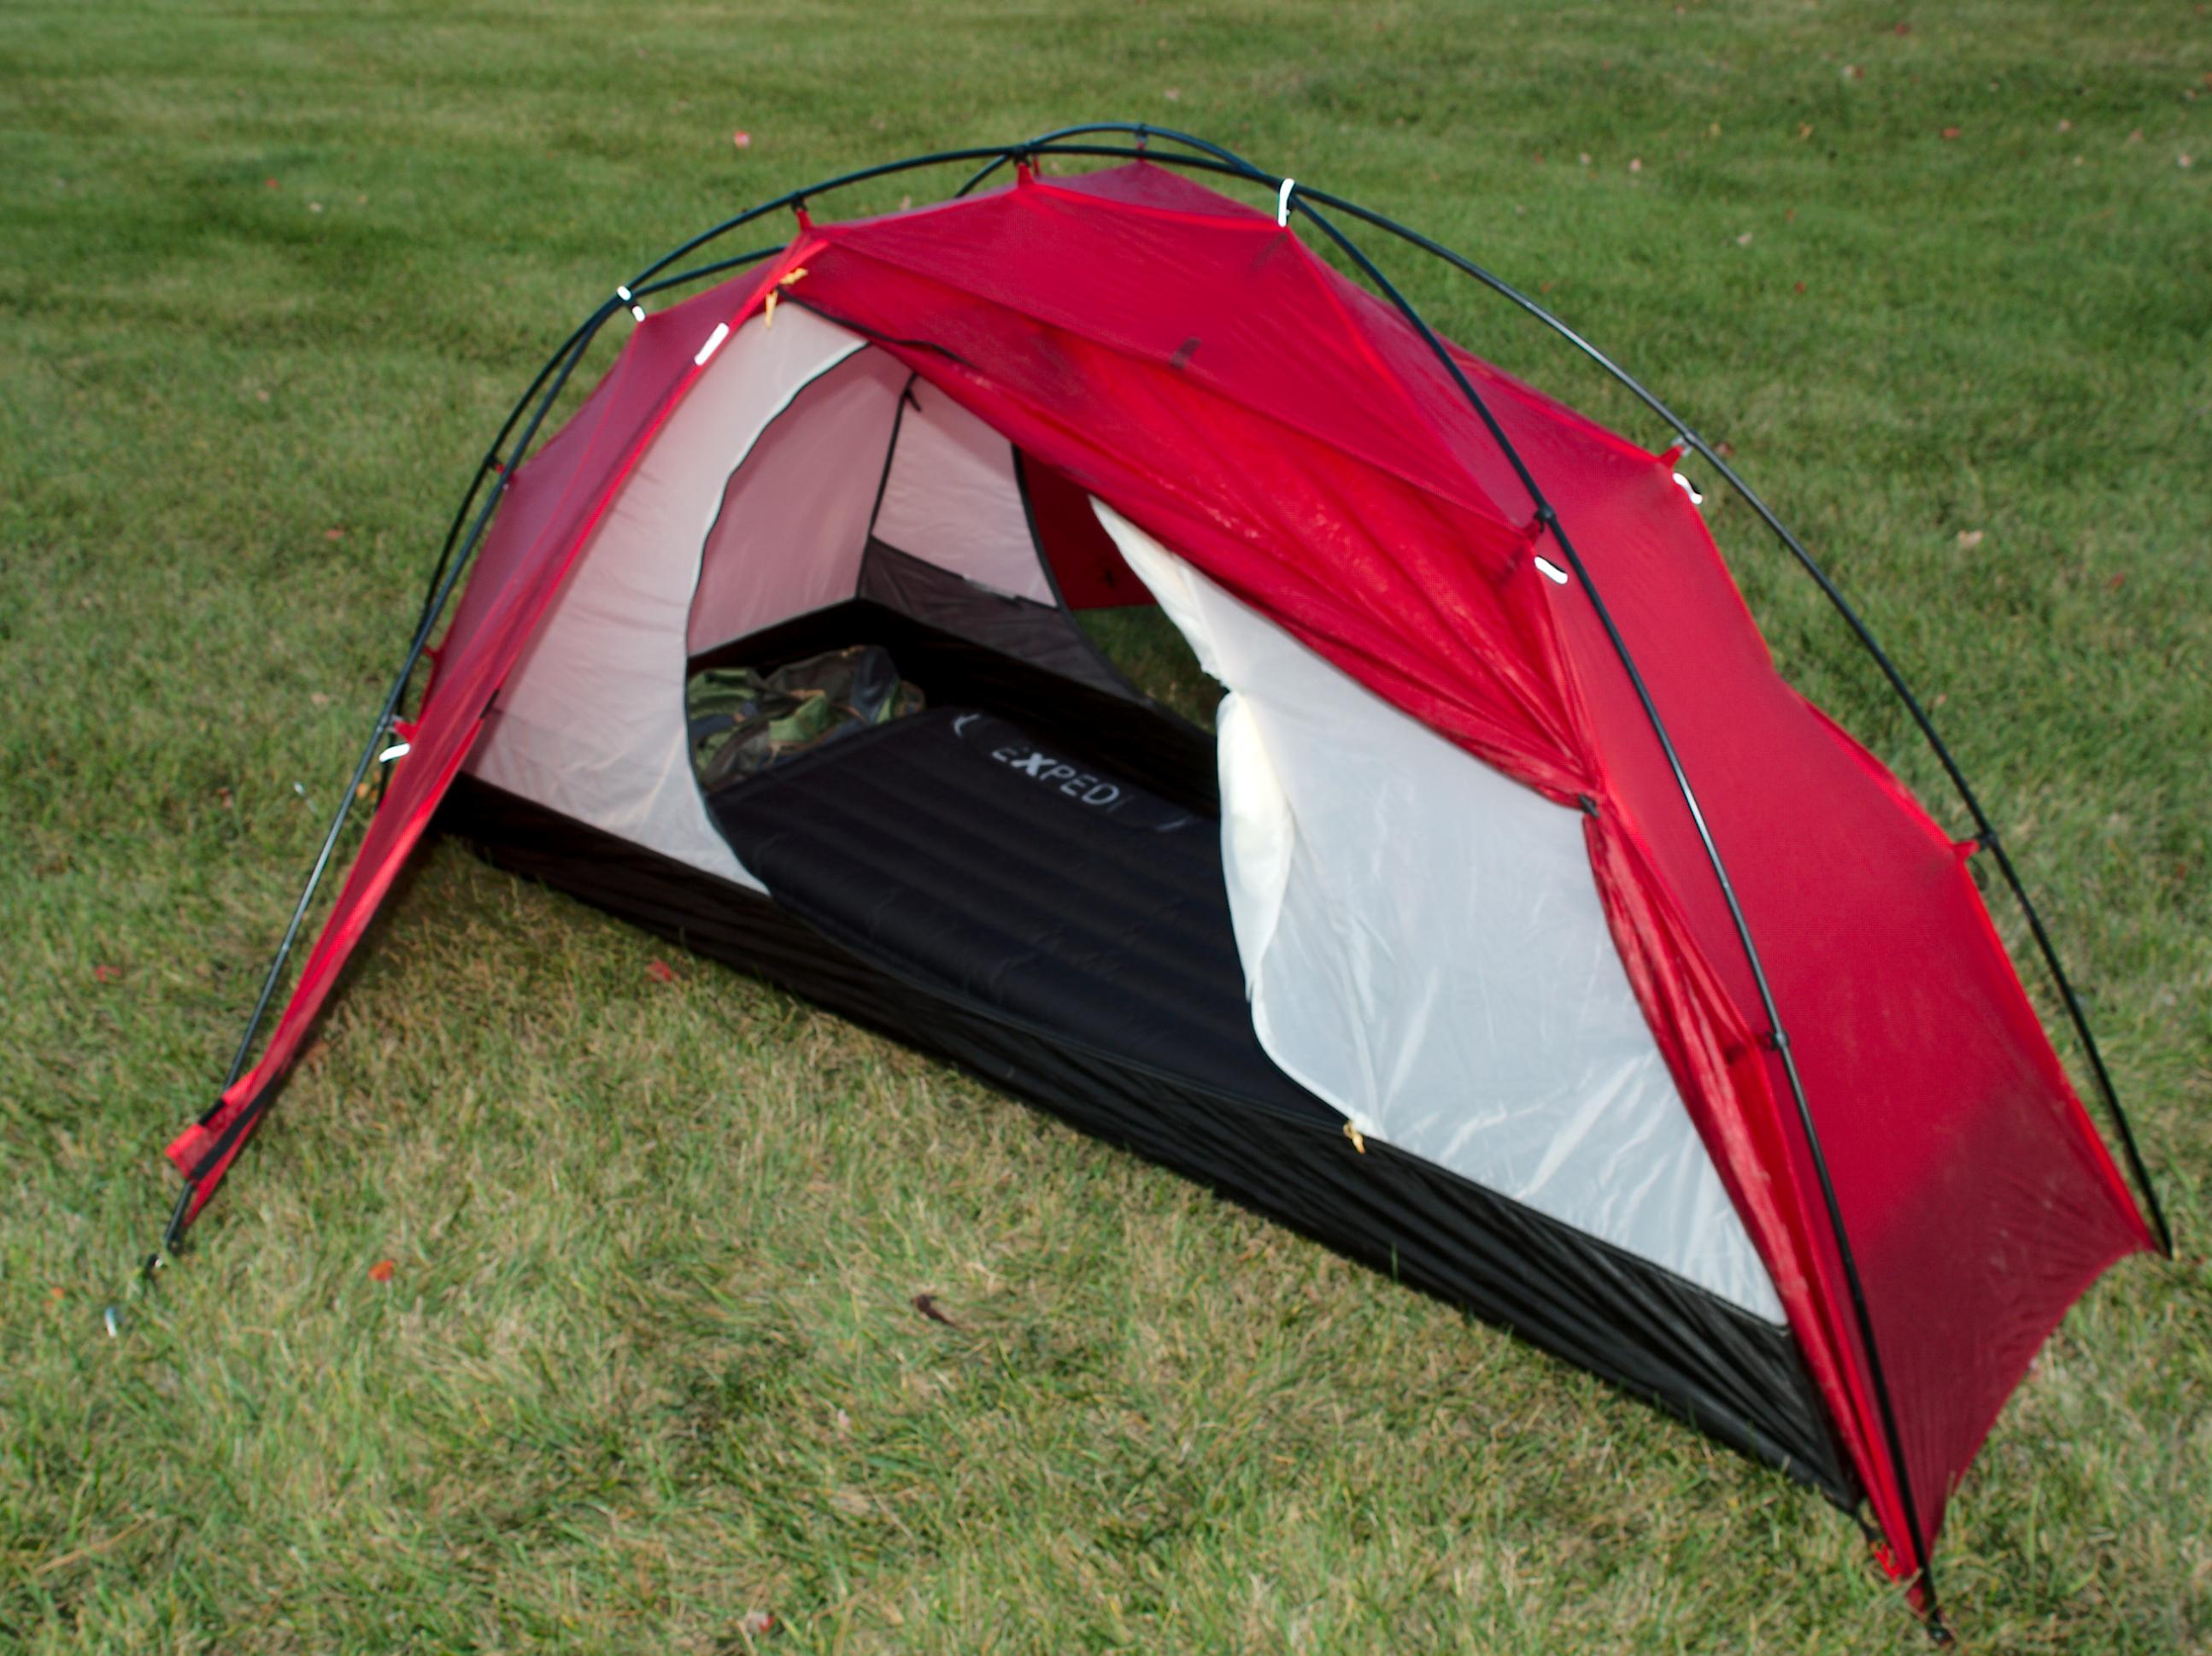 Big Sky International Chinook butthead  & BWCA Solo tent vs. 2 man tent ... what would you take? Boundary ...